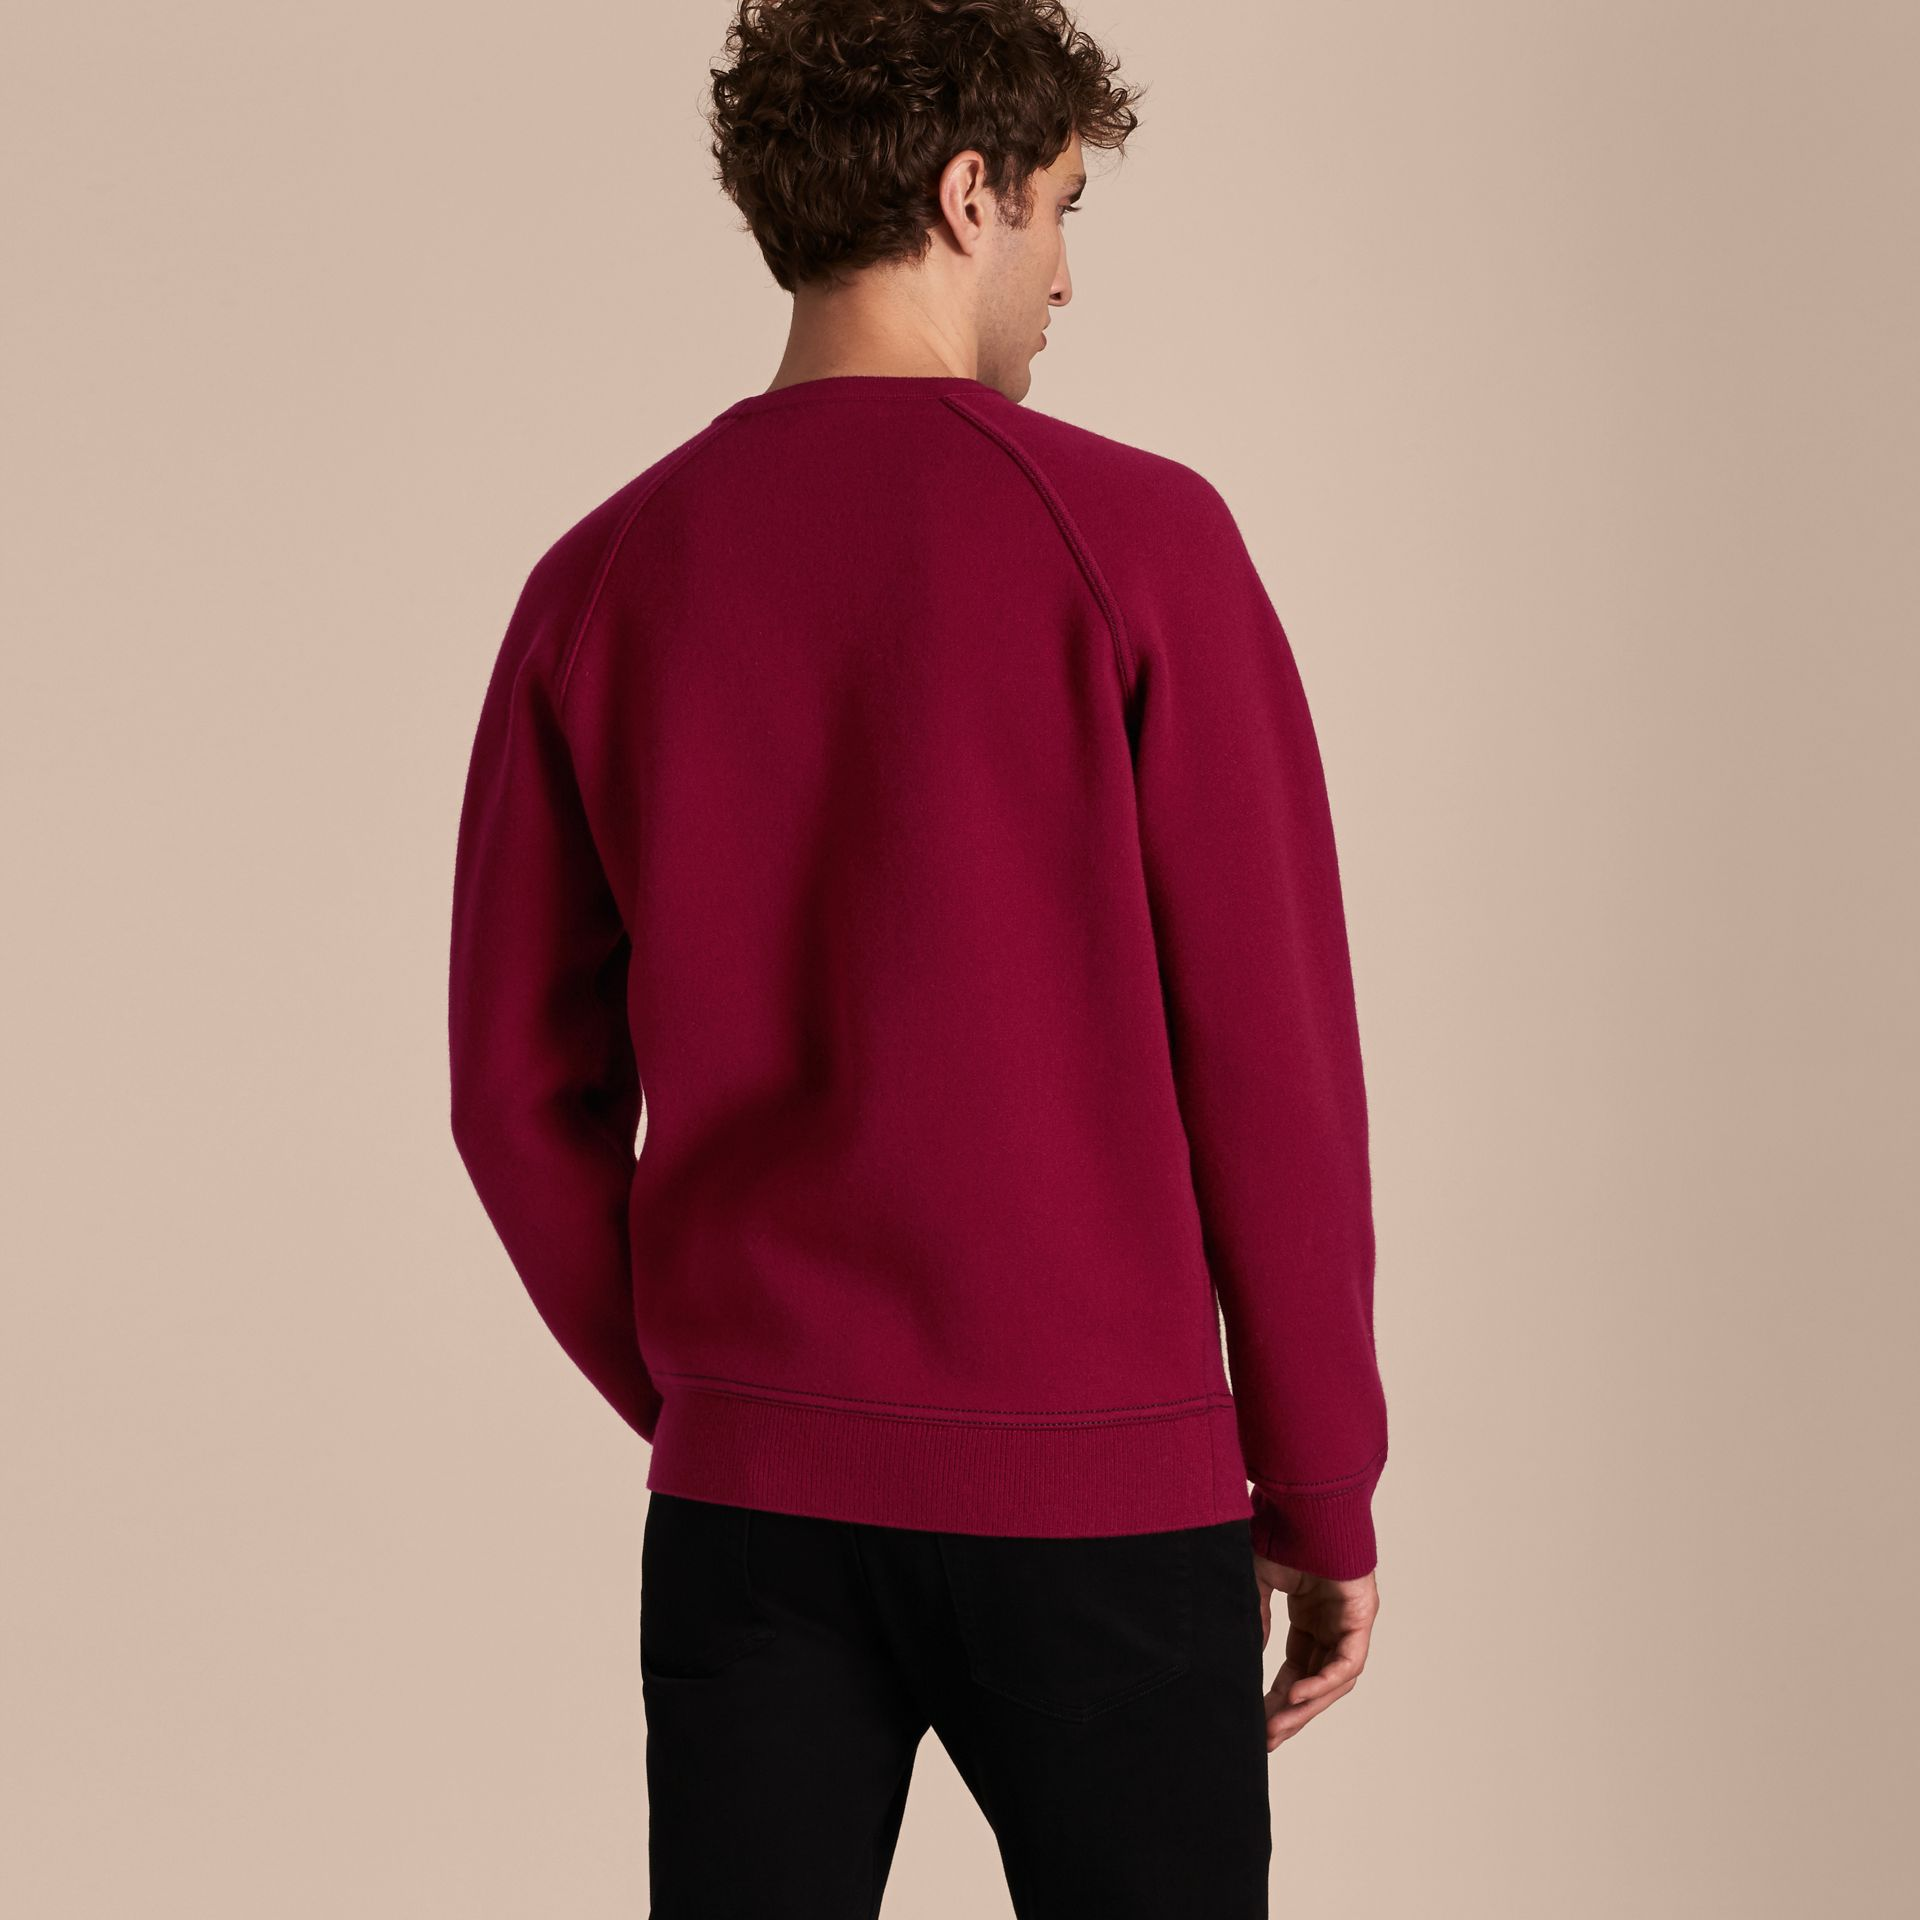 Burgundy Topstitch Detail Wool Cashmere Blend Sweatshirt Burgundy - gallery image 3